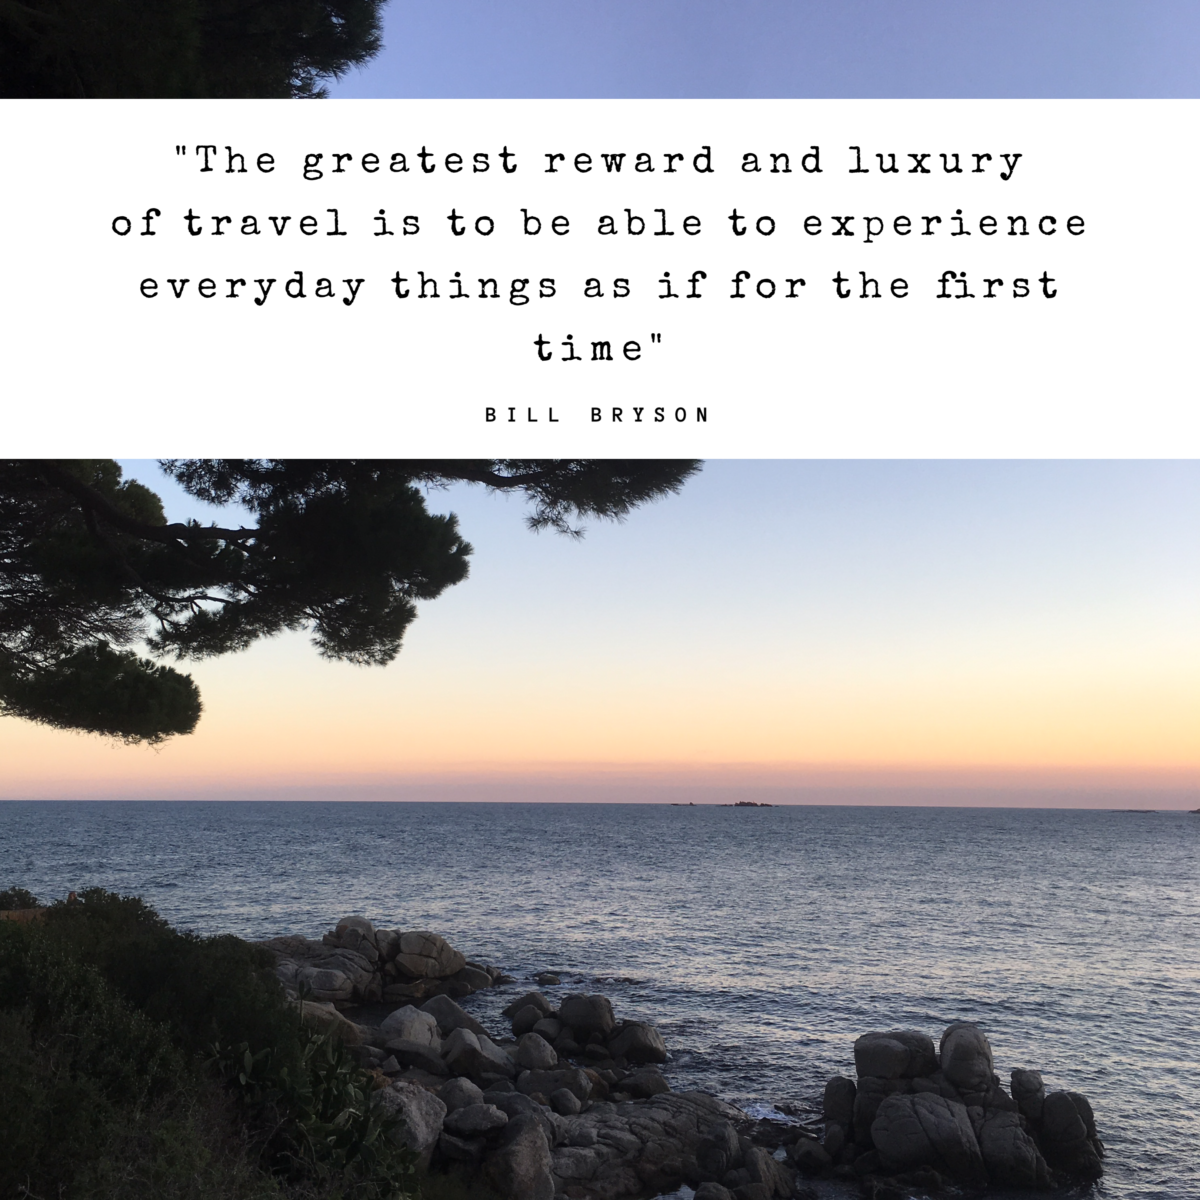 Travel quote: The greatest reward and luxury of travel is to be able to experience everyday things as if for the first time